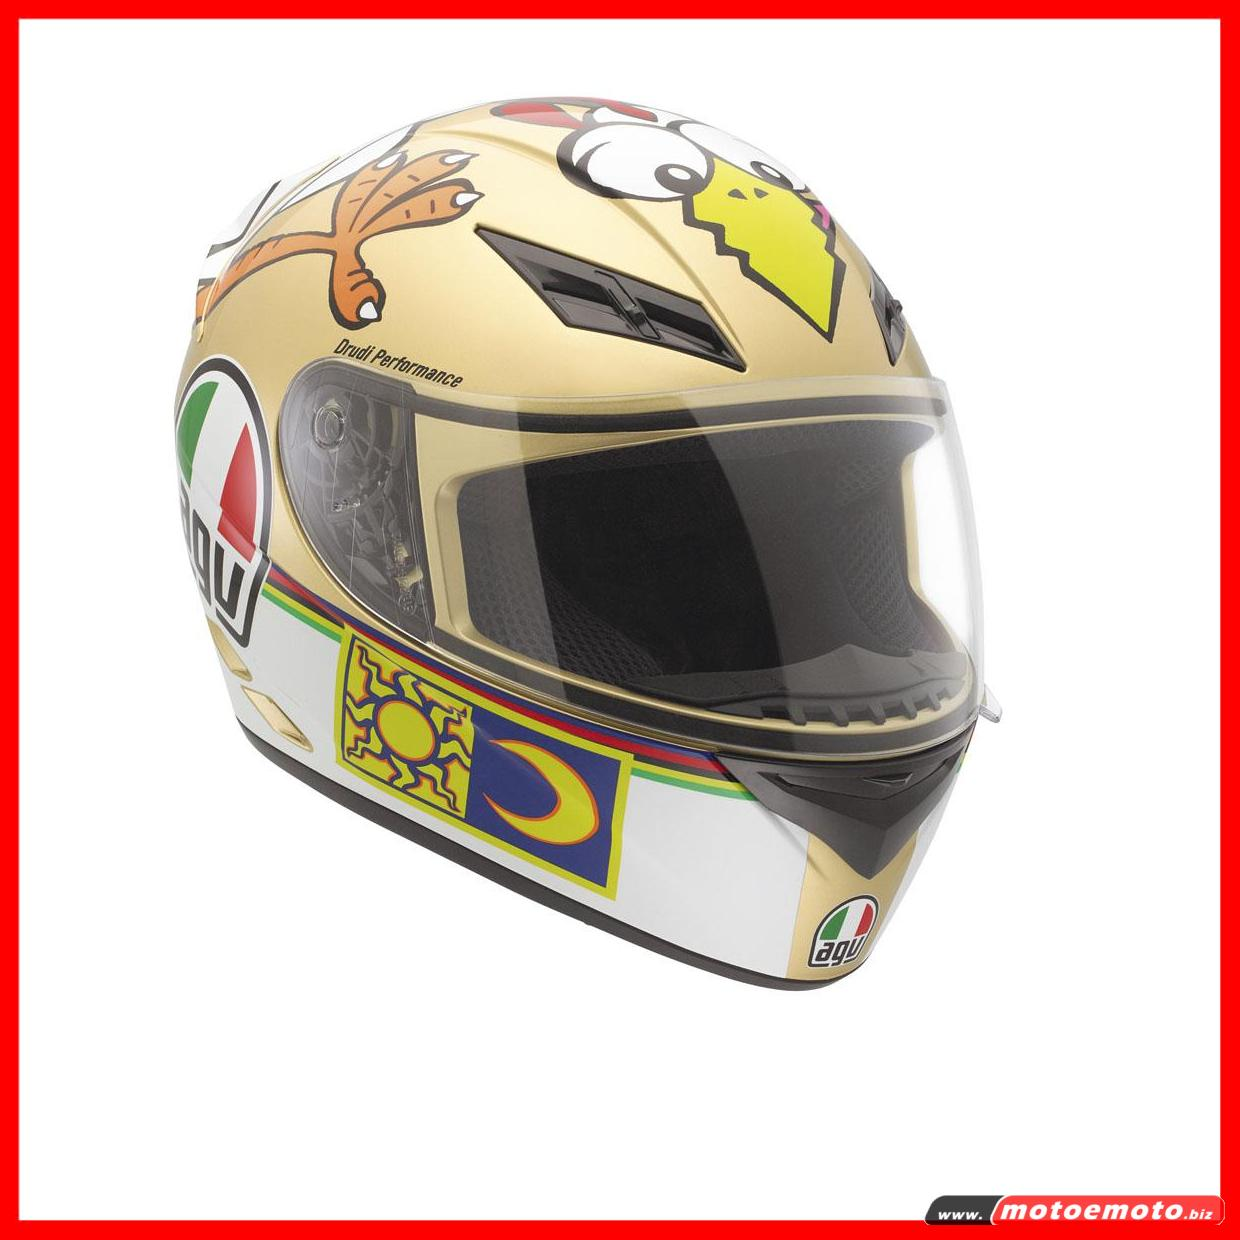 Casco-Moto-Integrale-Agv-K3-Top-The-Chicken-Valentino-Rossi-46-Scooter